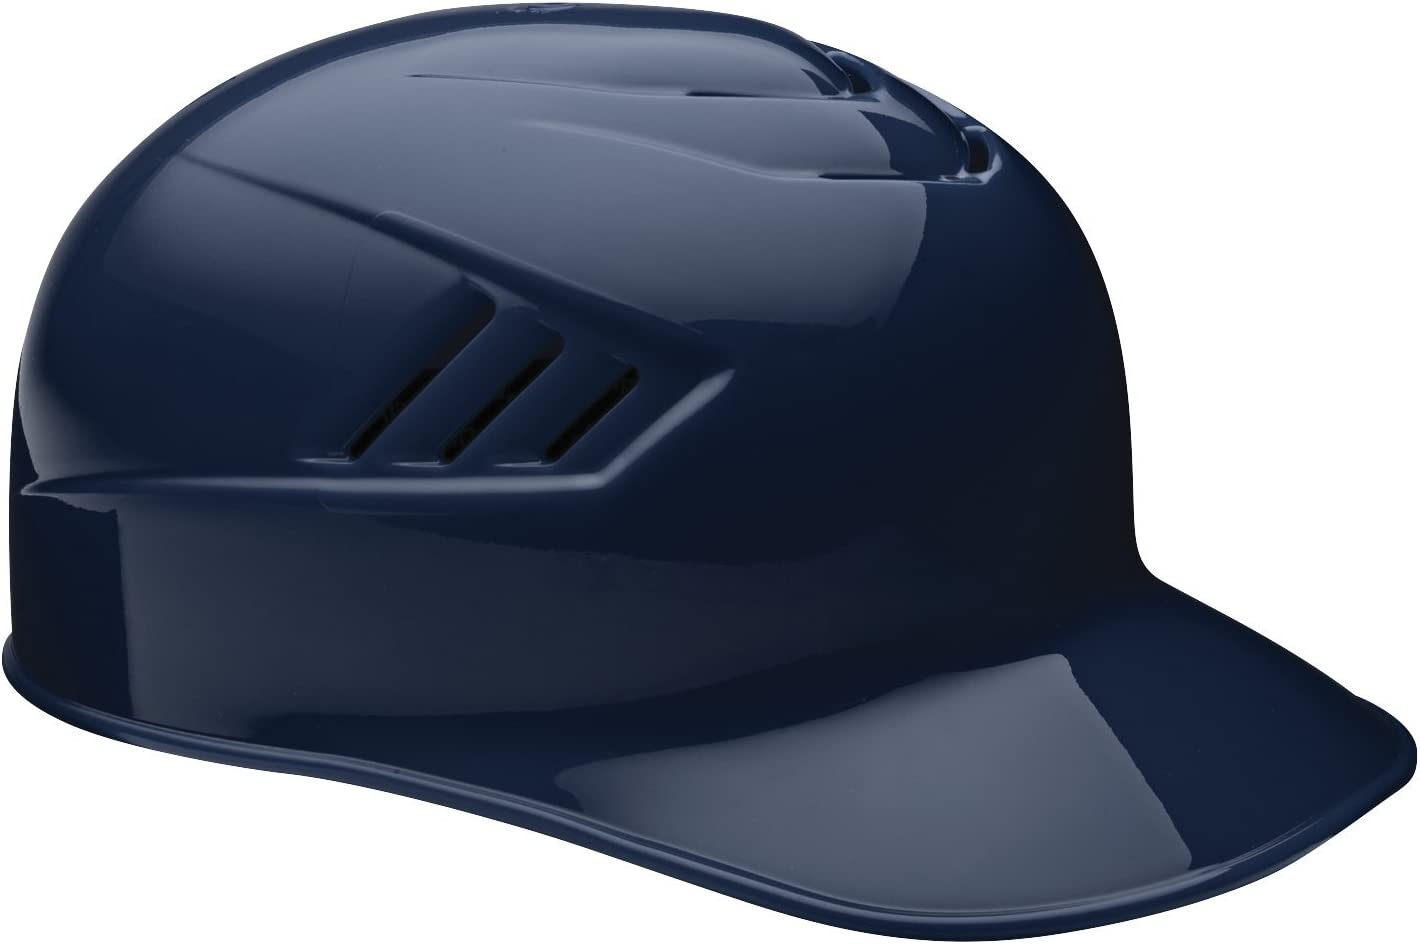 Rawlings Max 73% OFF OFFicial site Pro Base Coach Helmet 7 8 1 Navy